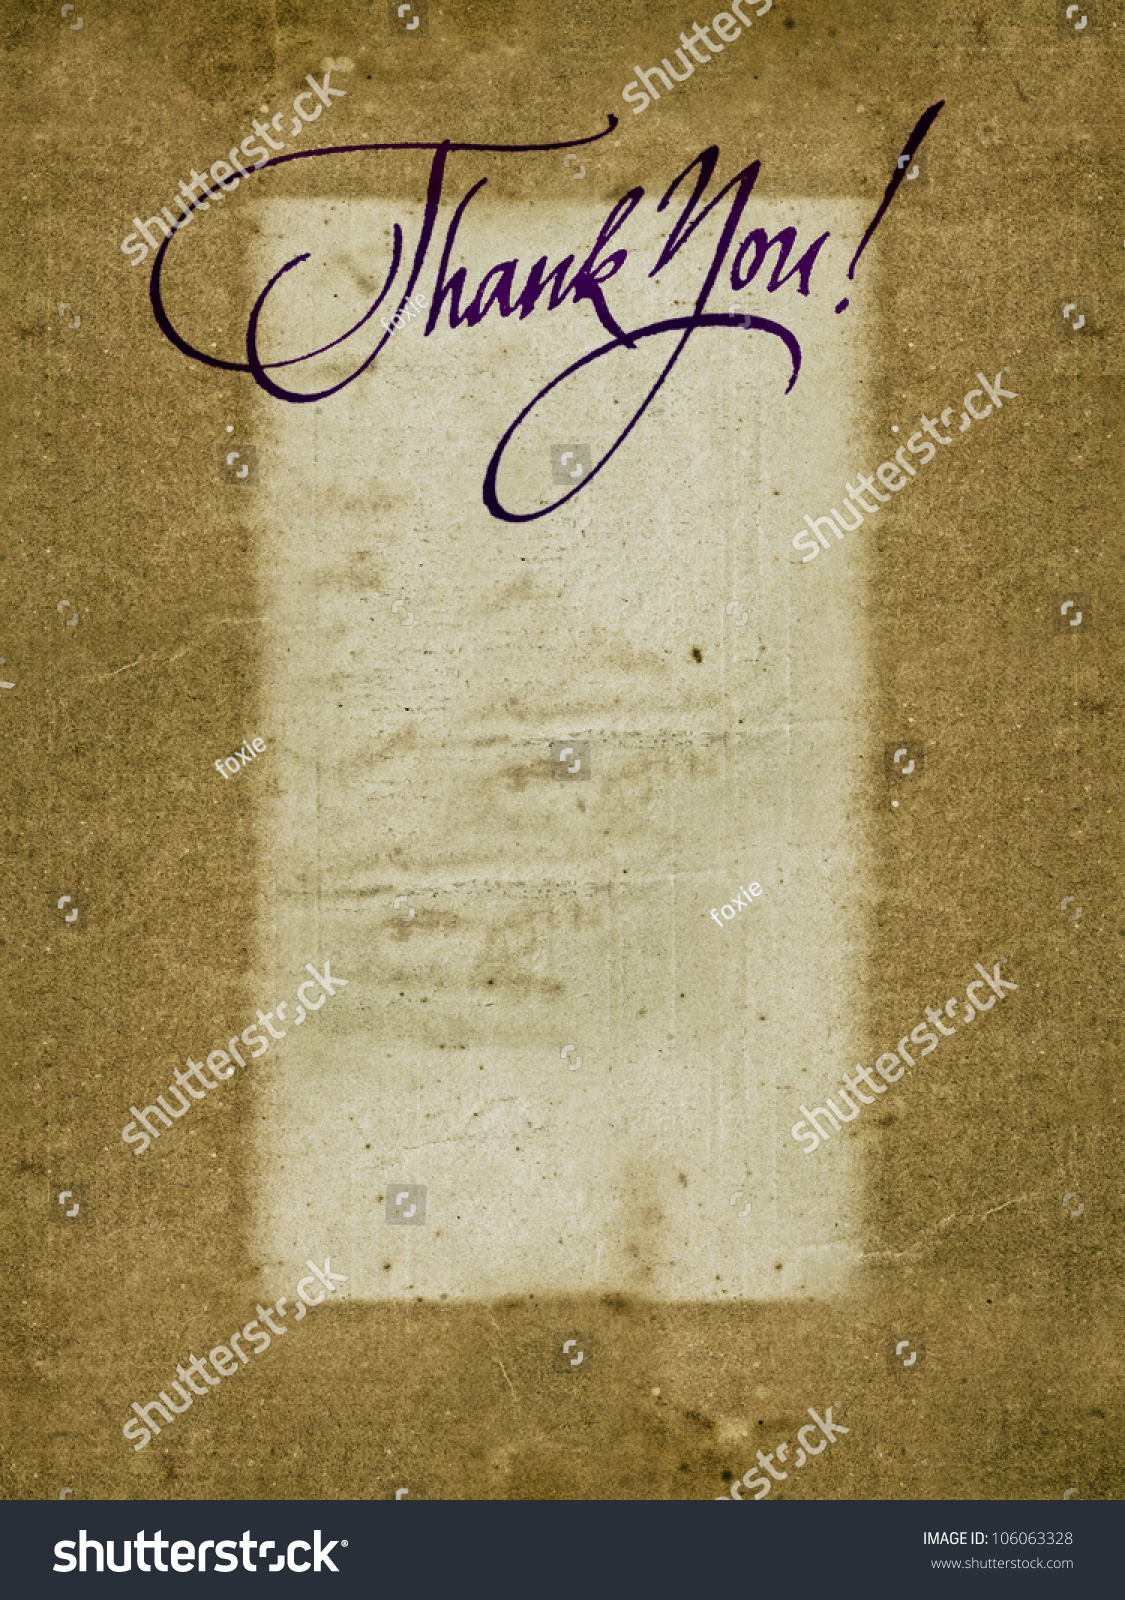 Quot thank you handwritten calligraphy over old vintage paper